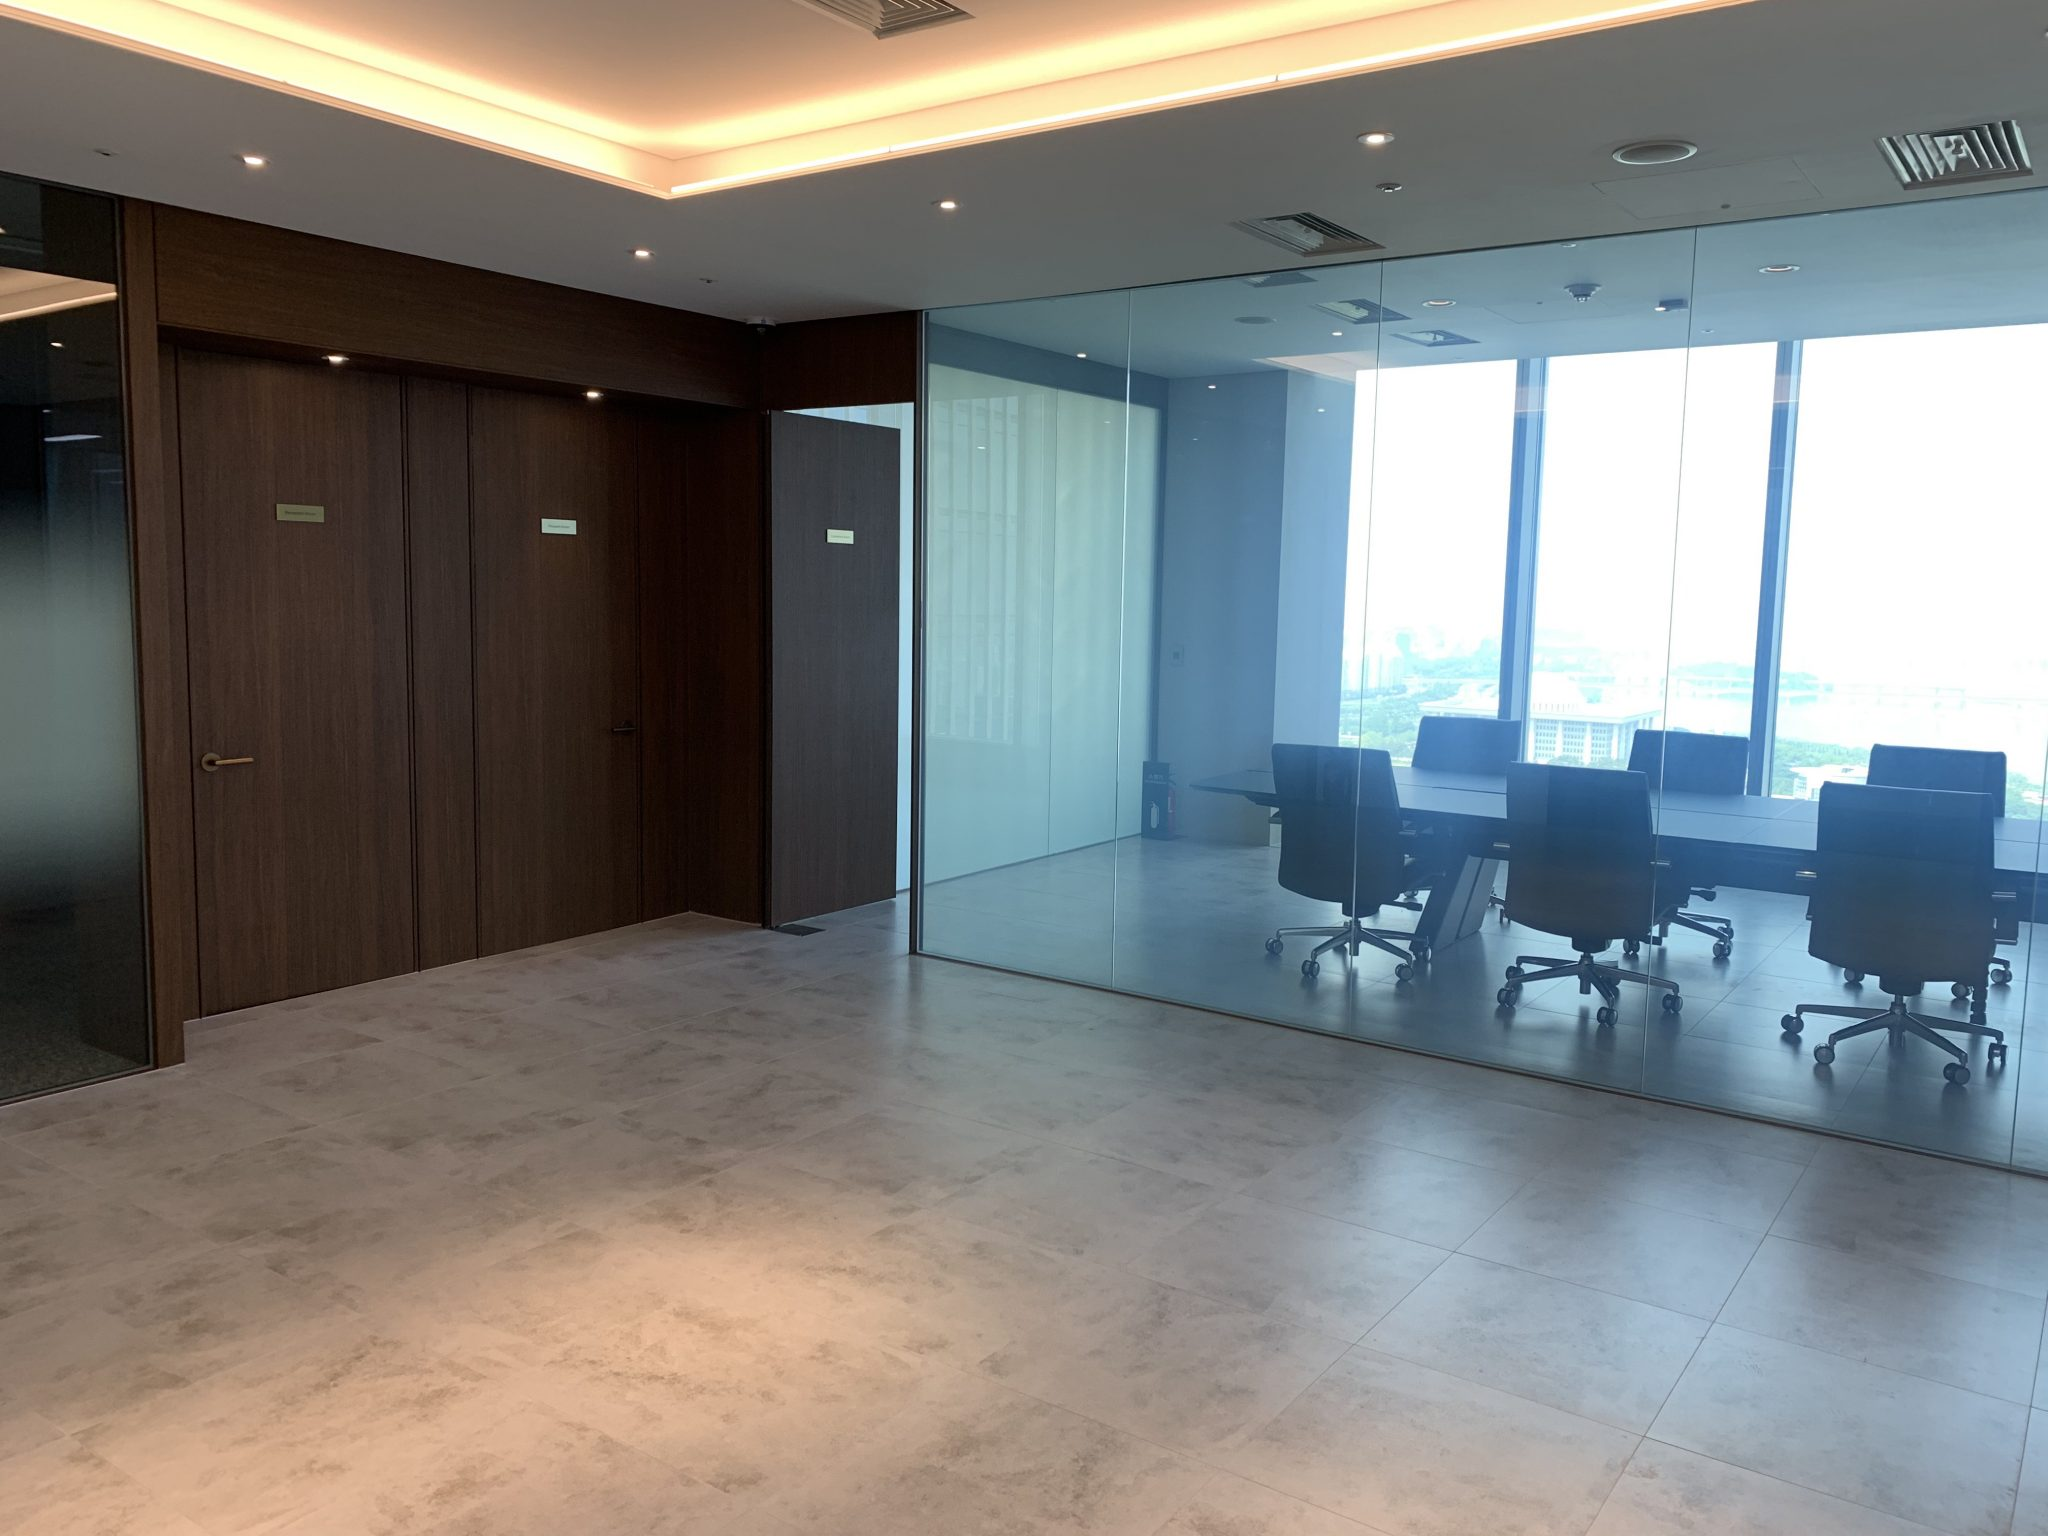 Office building with glass walls in the conference room